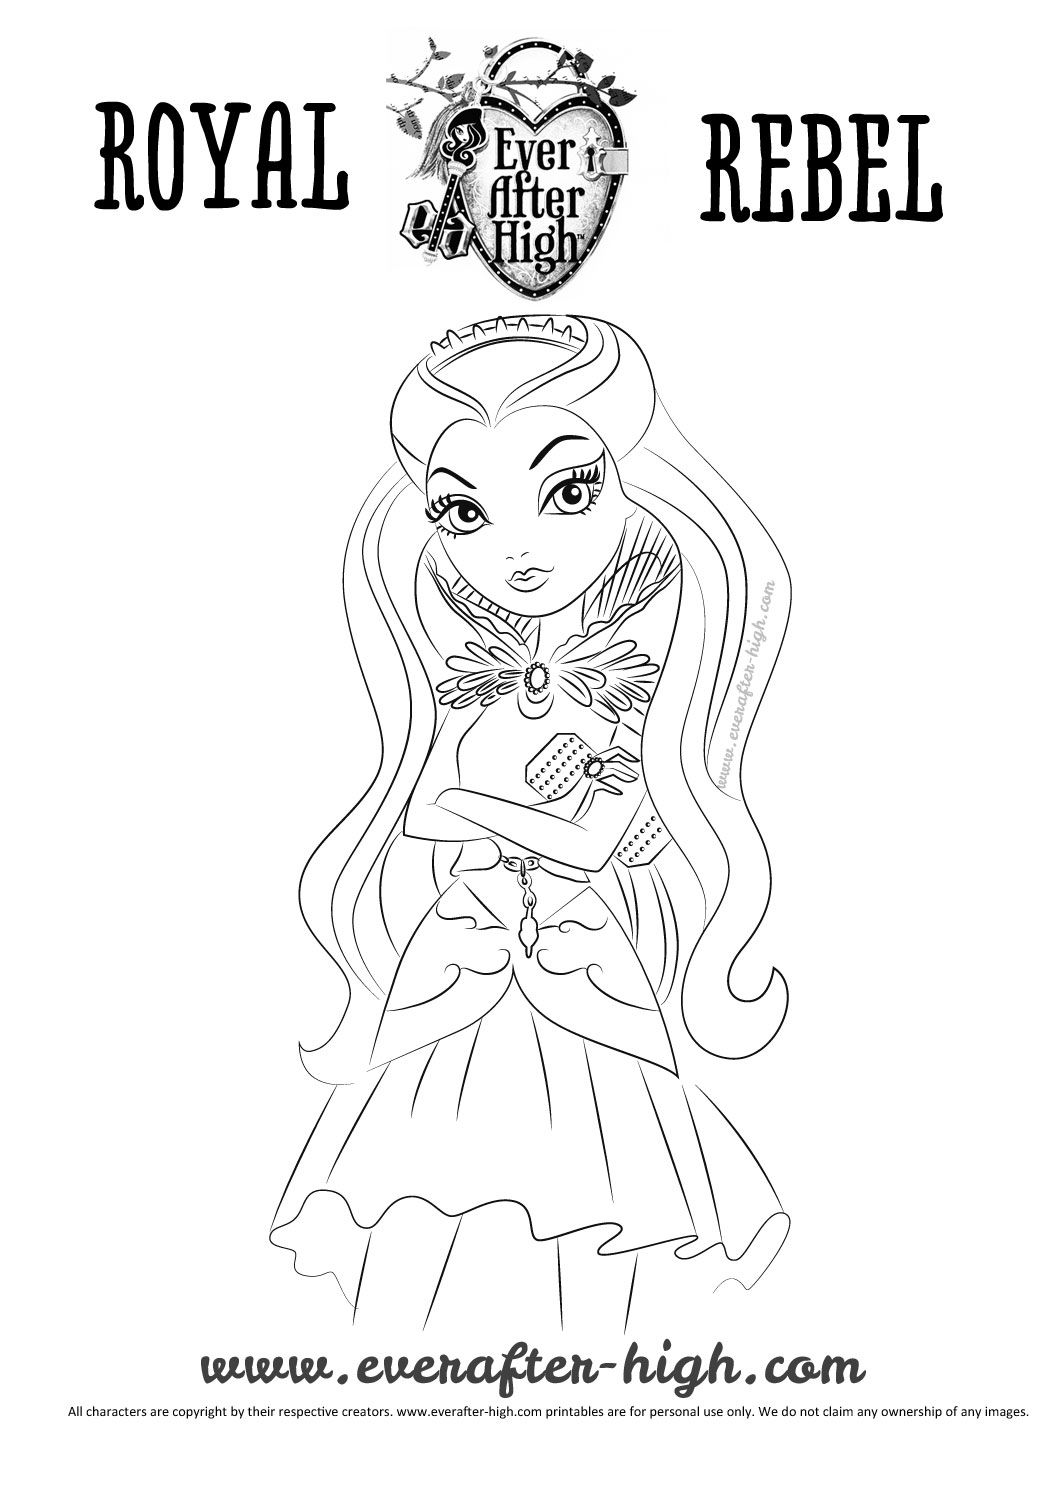 Ever After High Raven Queen Coloring Page Jpg 1 063 1 504 Pixels Ever After High Coloring Pages Raven Queen